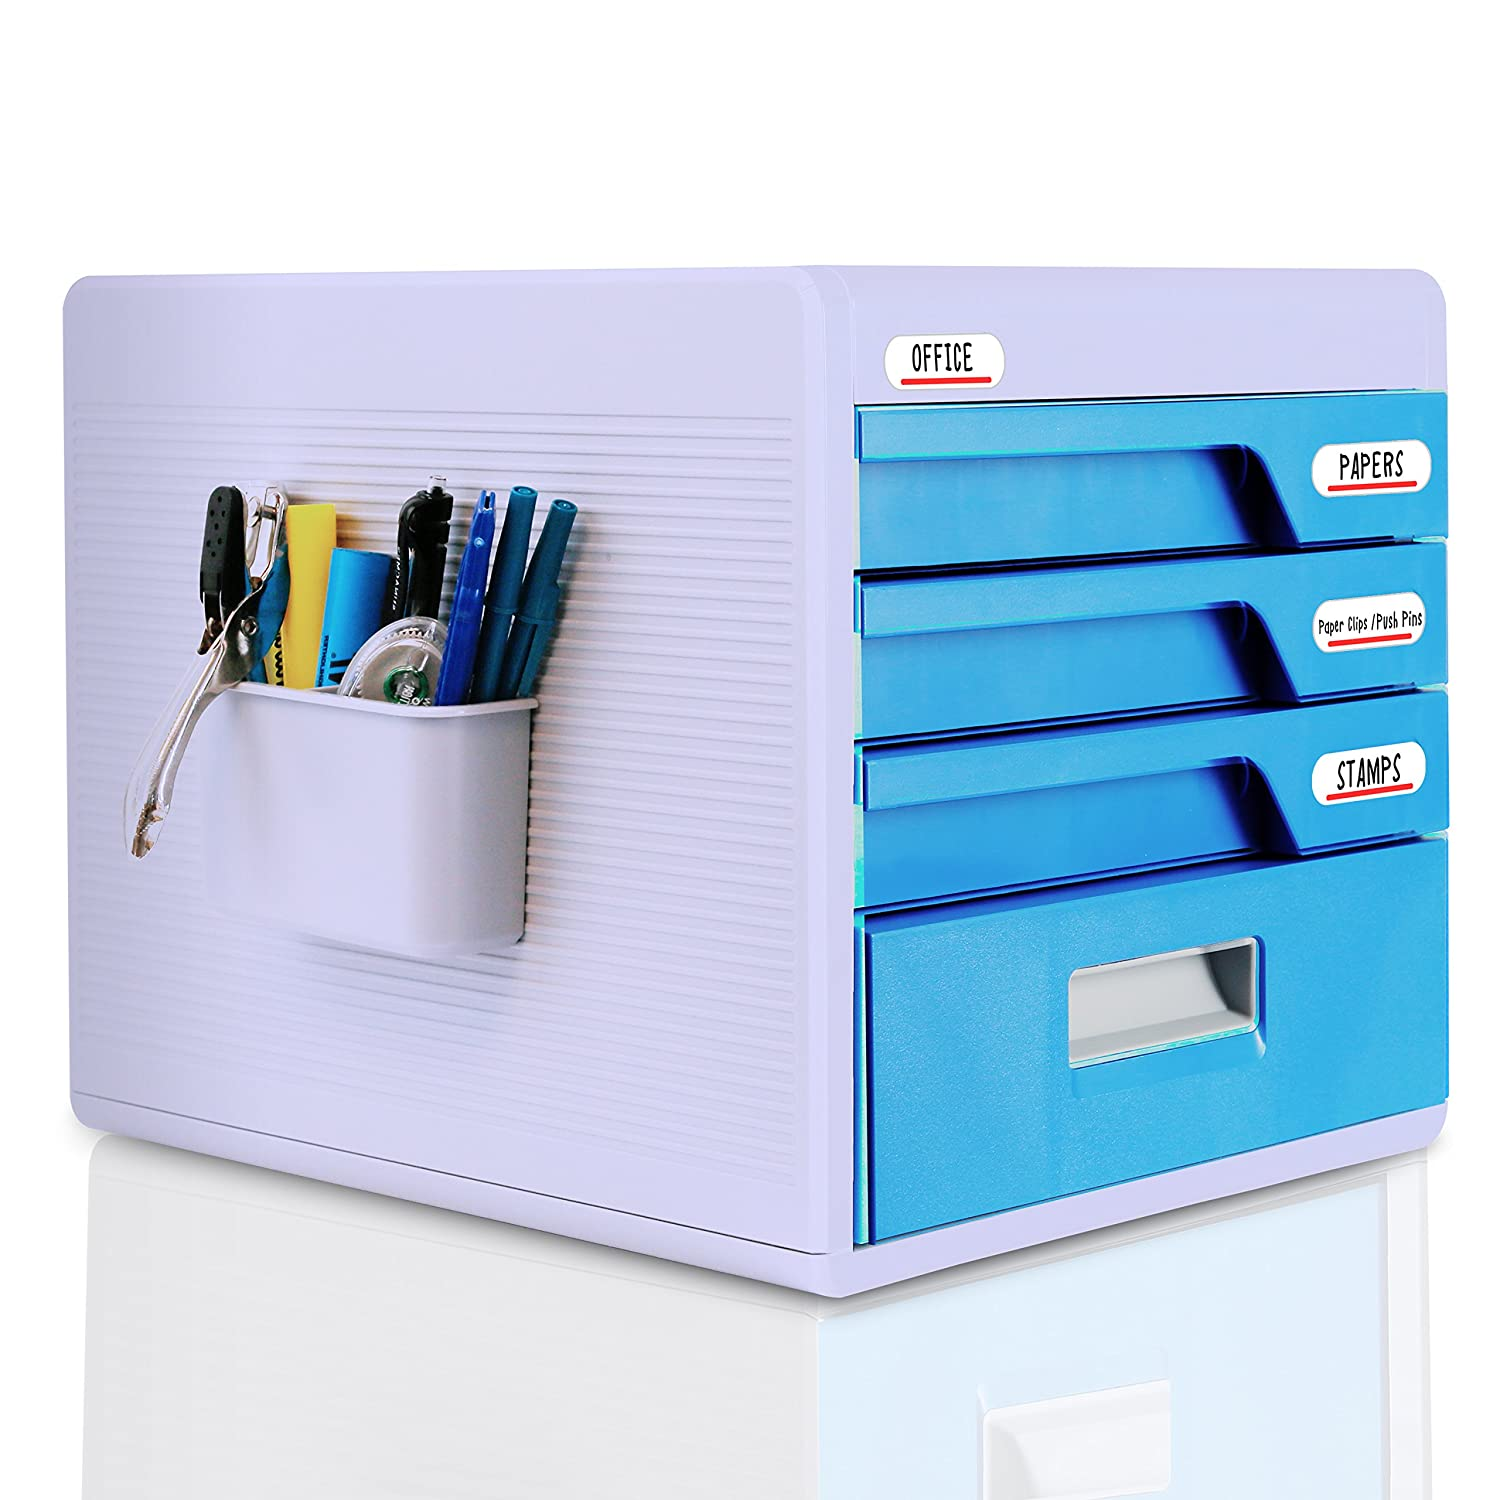 SereneLife Office Desk Organizer with Drawer Cabinet Lock - Home Desktop File Storage Box w/ 4 Locking Drawers, Great for Filing & Organizing Paper Documents, Tools, Kids Craft Supplies - (SLFCAB20)